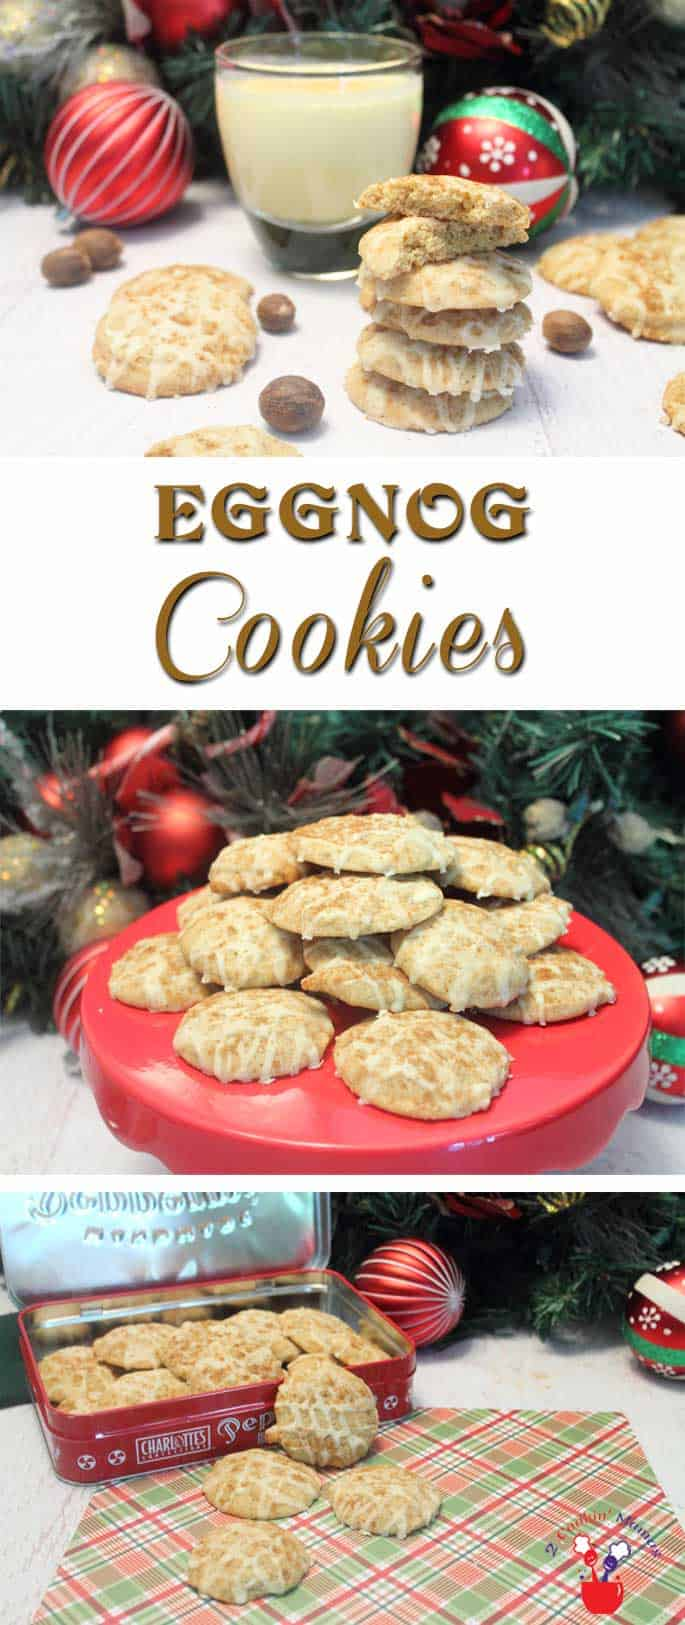 Bake these delicious soft & spicy eggnog cookies with all the rich flavor of eggnog, nutmeg, cinnamon and a touch of rum.